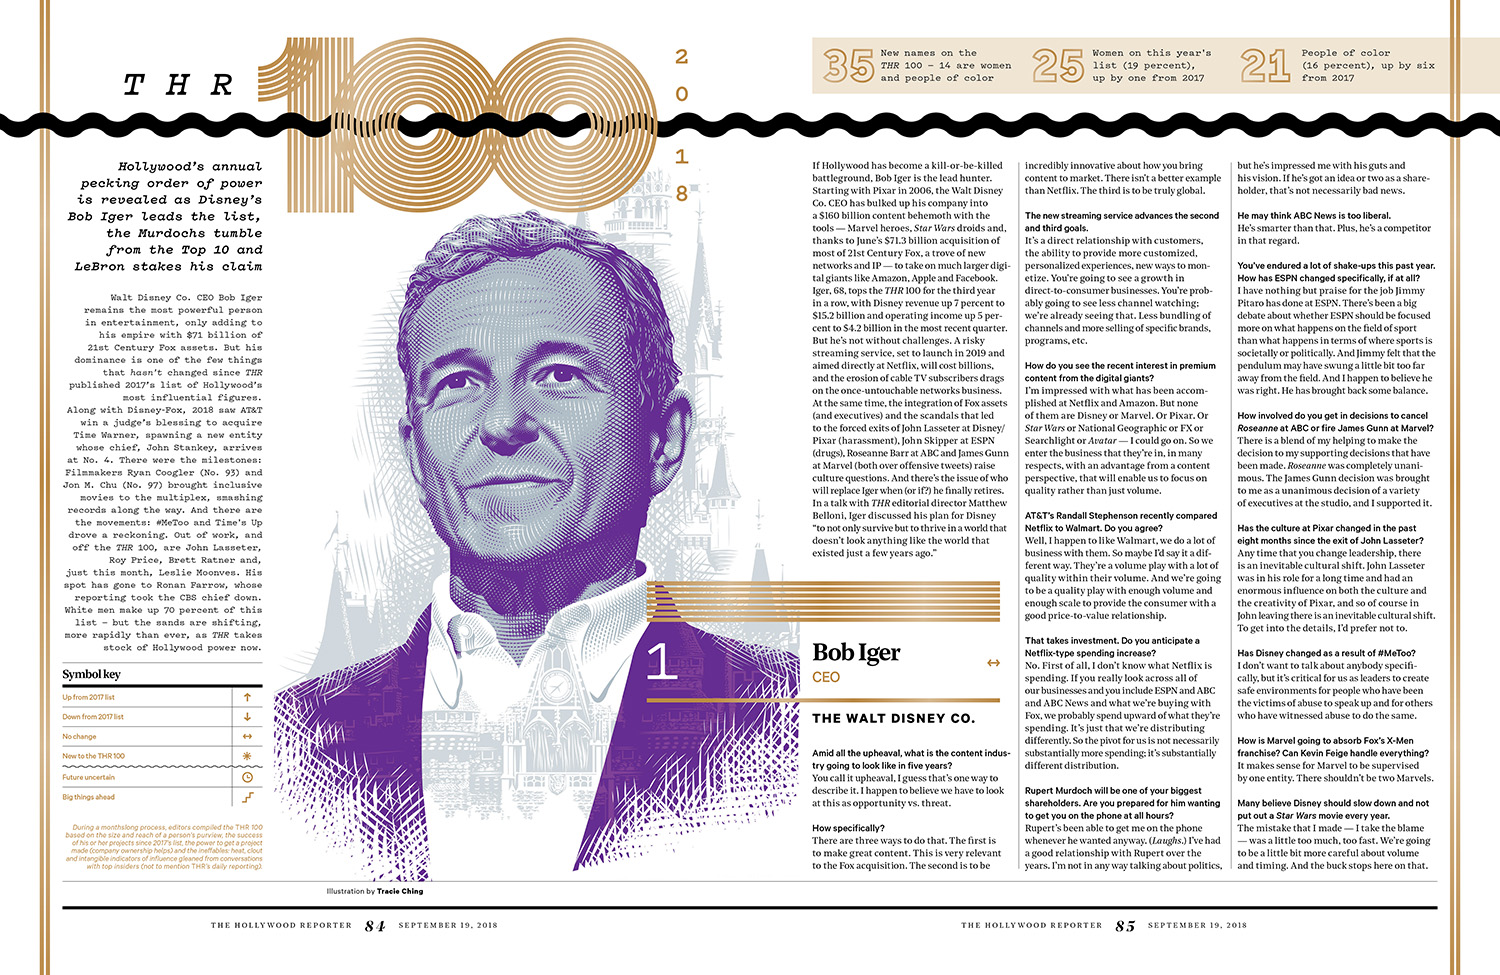 THR 100 / The Hollywood Reporter / 9.19.18 / kelsey stefanson / art direction + graphic design / yeskelsey.com